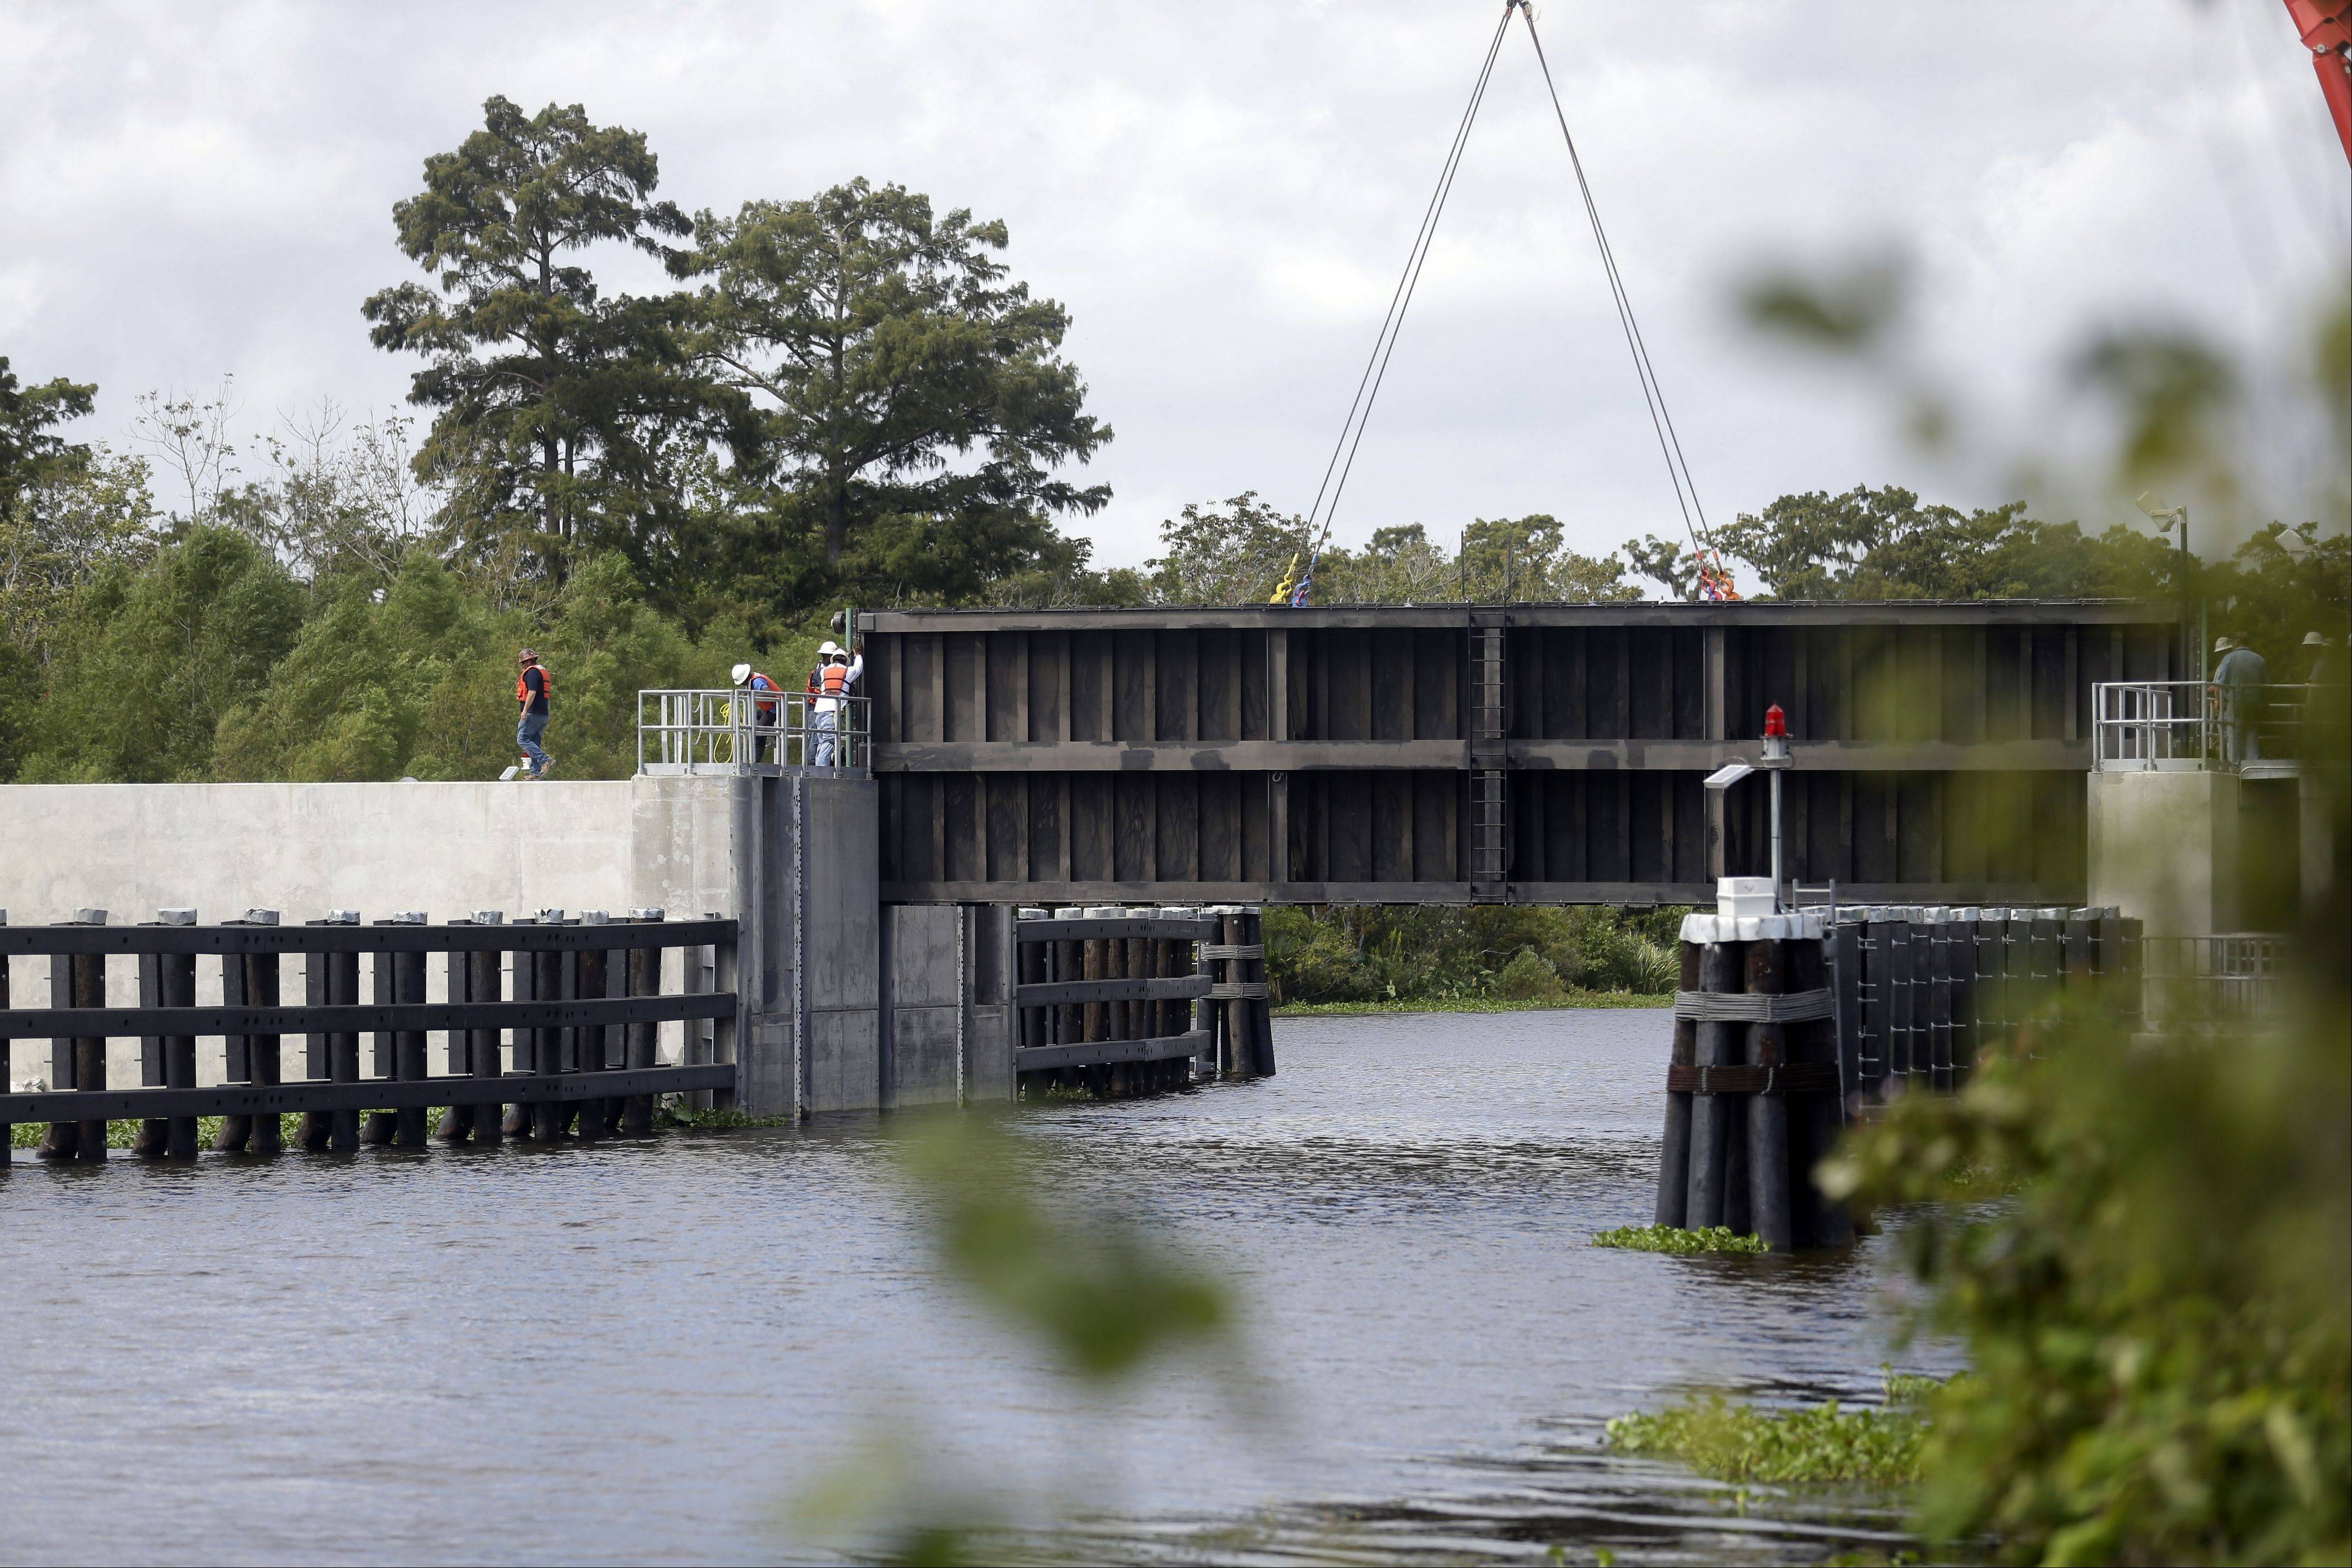 A crane lowers a flood gate into Hero Canal, as part of the hurricane protection system protecting the greater New Orleans area, in anticipation of Tropical Storm Karen, in Belle Chasse, La., Friday, Oct. 4, 2013.